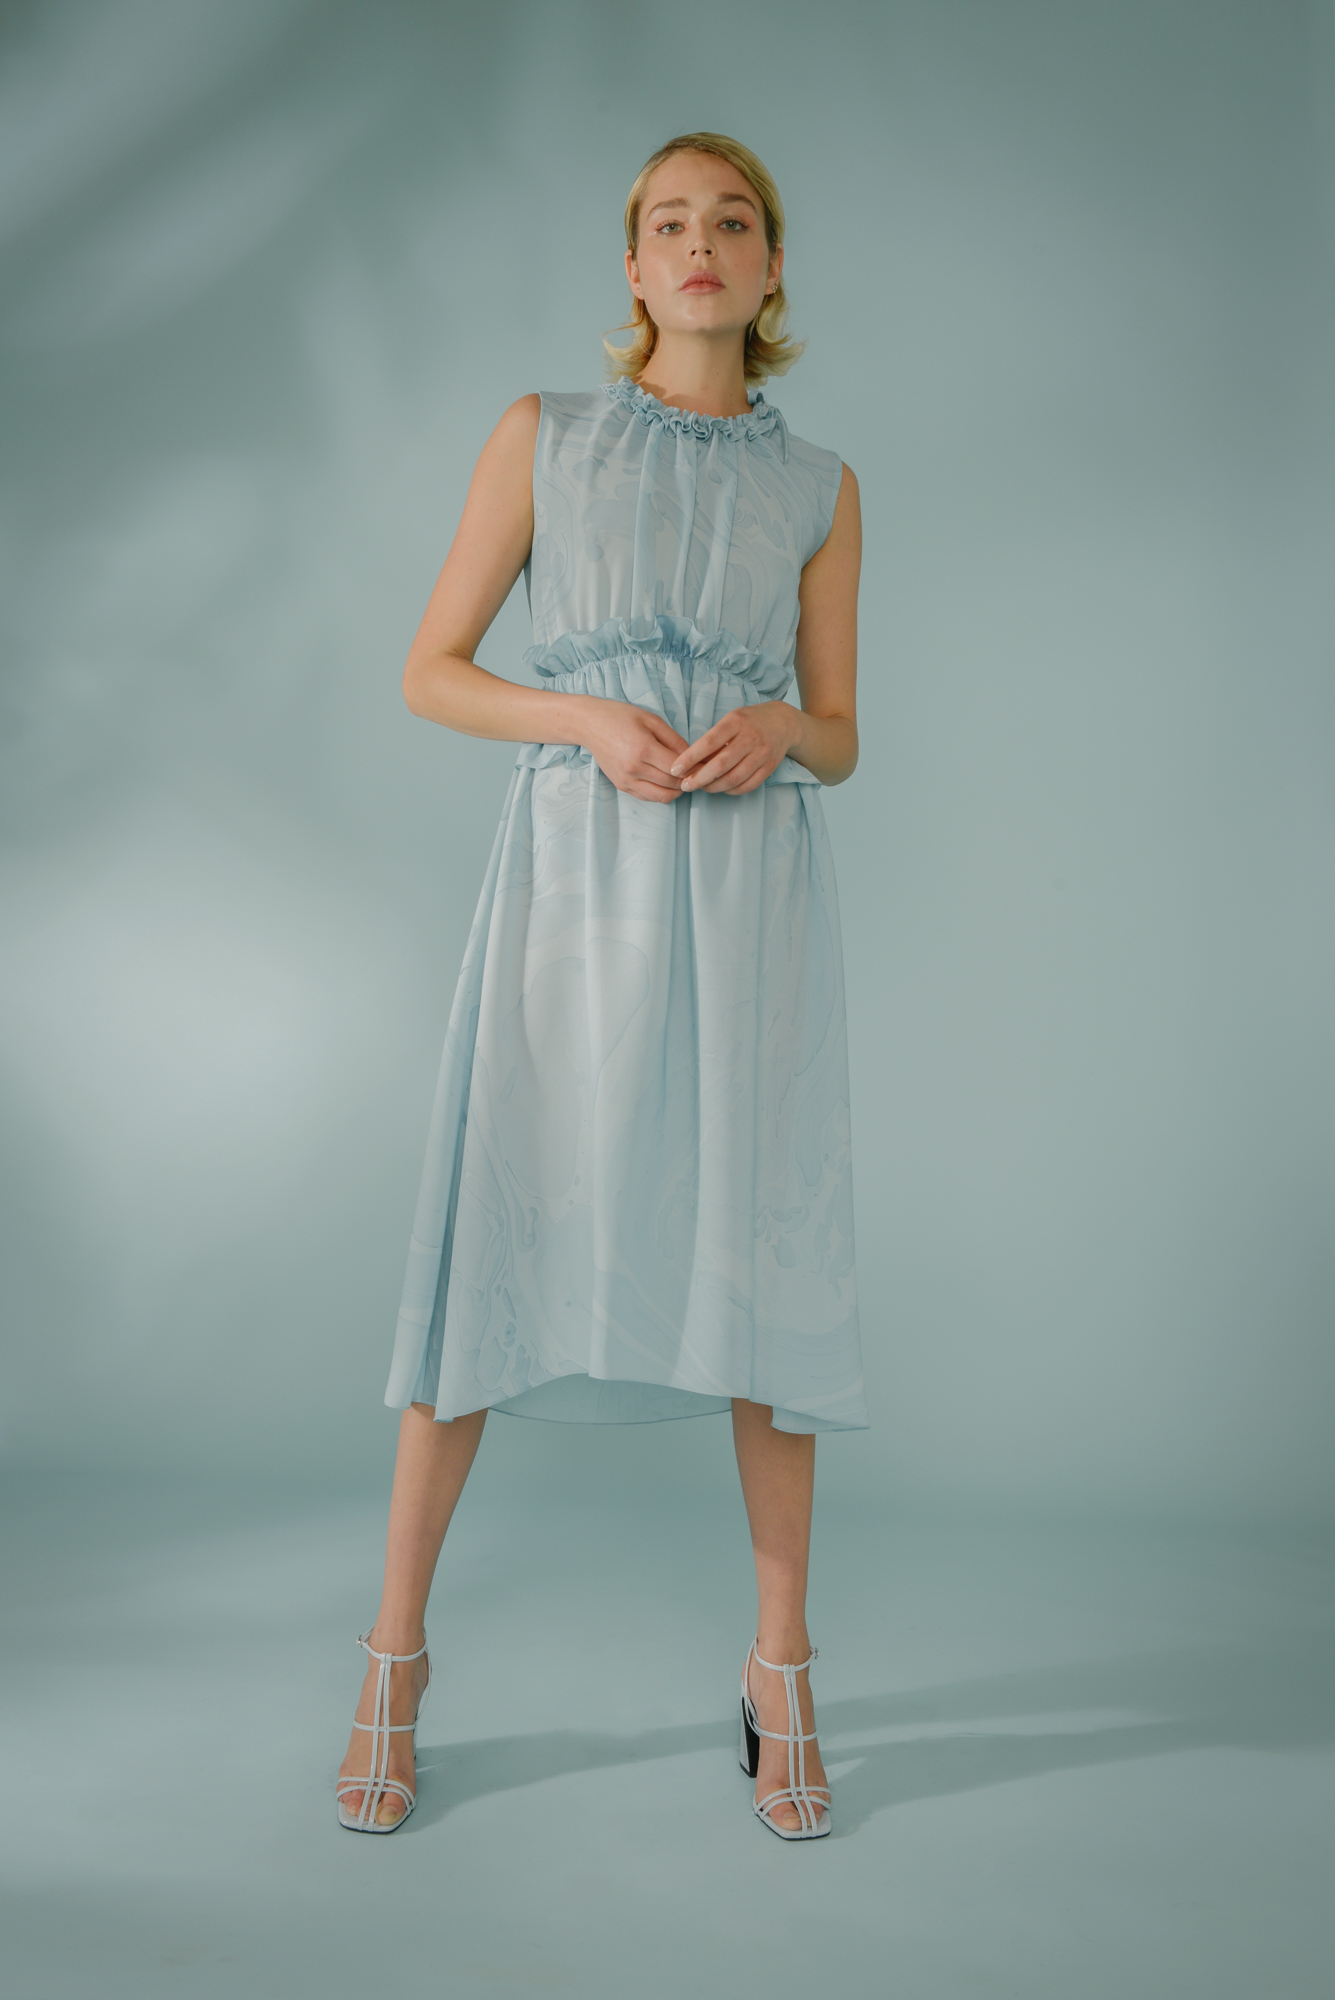 Raw Ruffle Dress by Edward Mongzar on curated-crowd.com